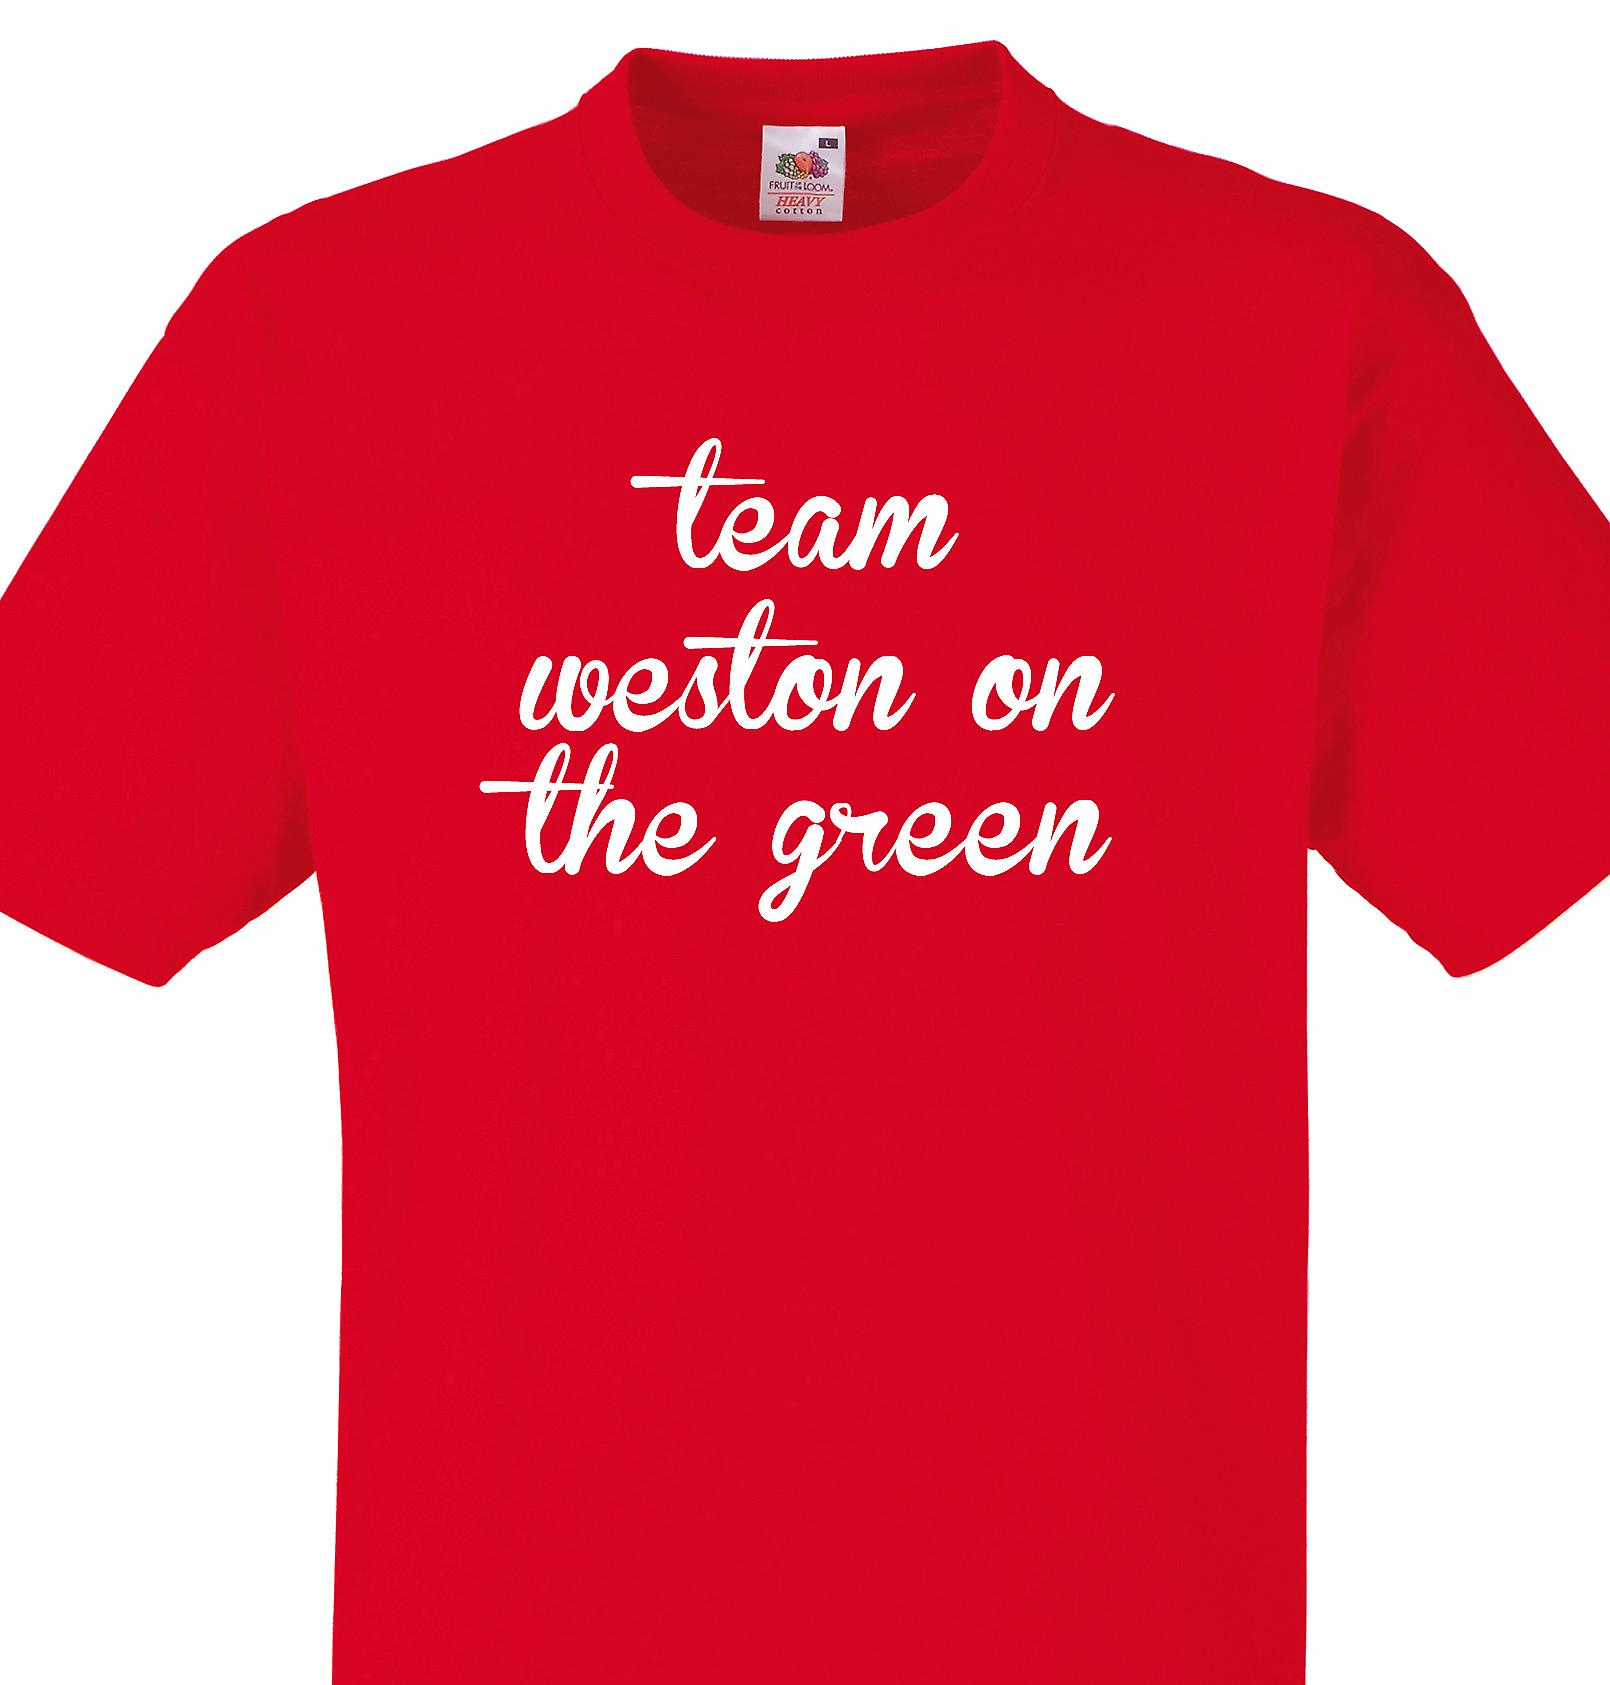 Team Weston on the green Red T shirt